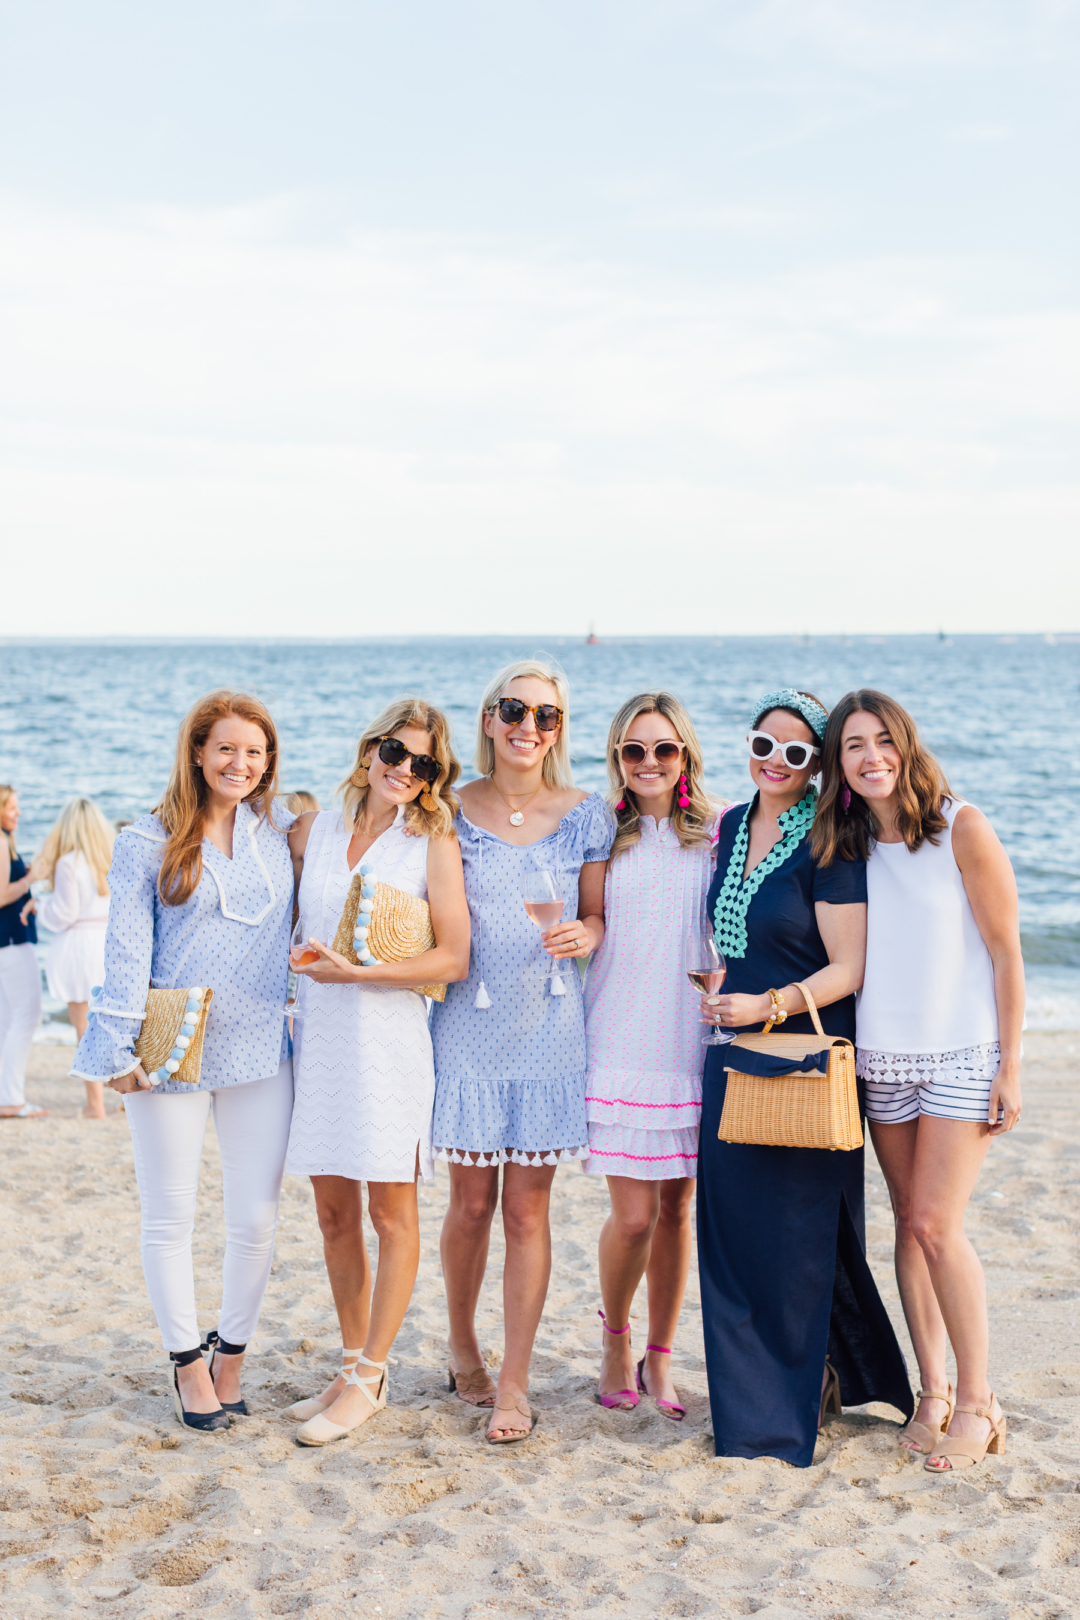 Fashion: Set Sail on Summer with Palm Beach Lately and Sail to Sable